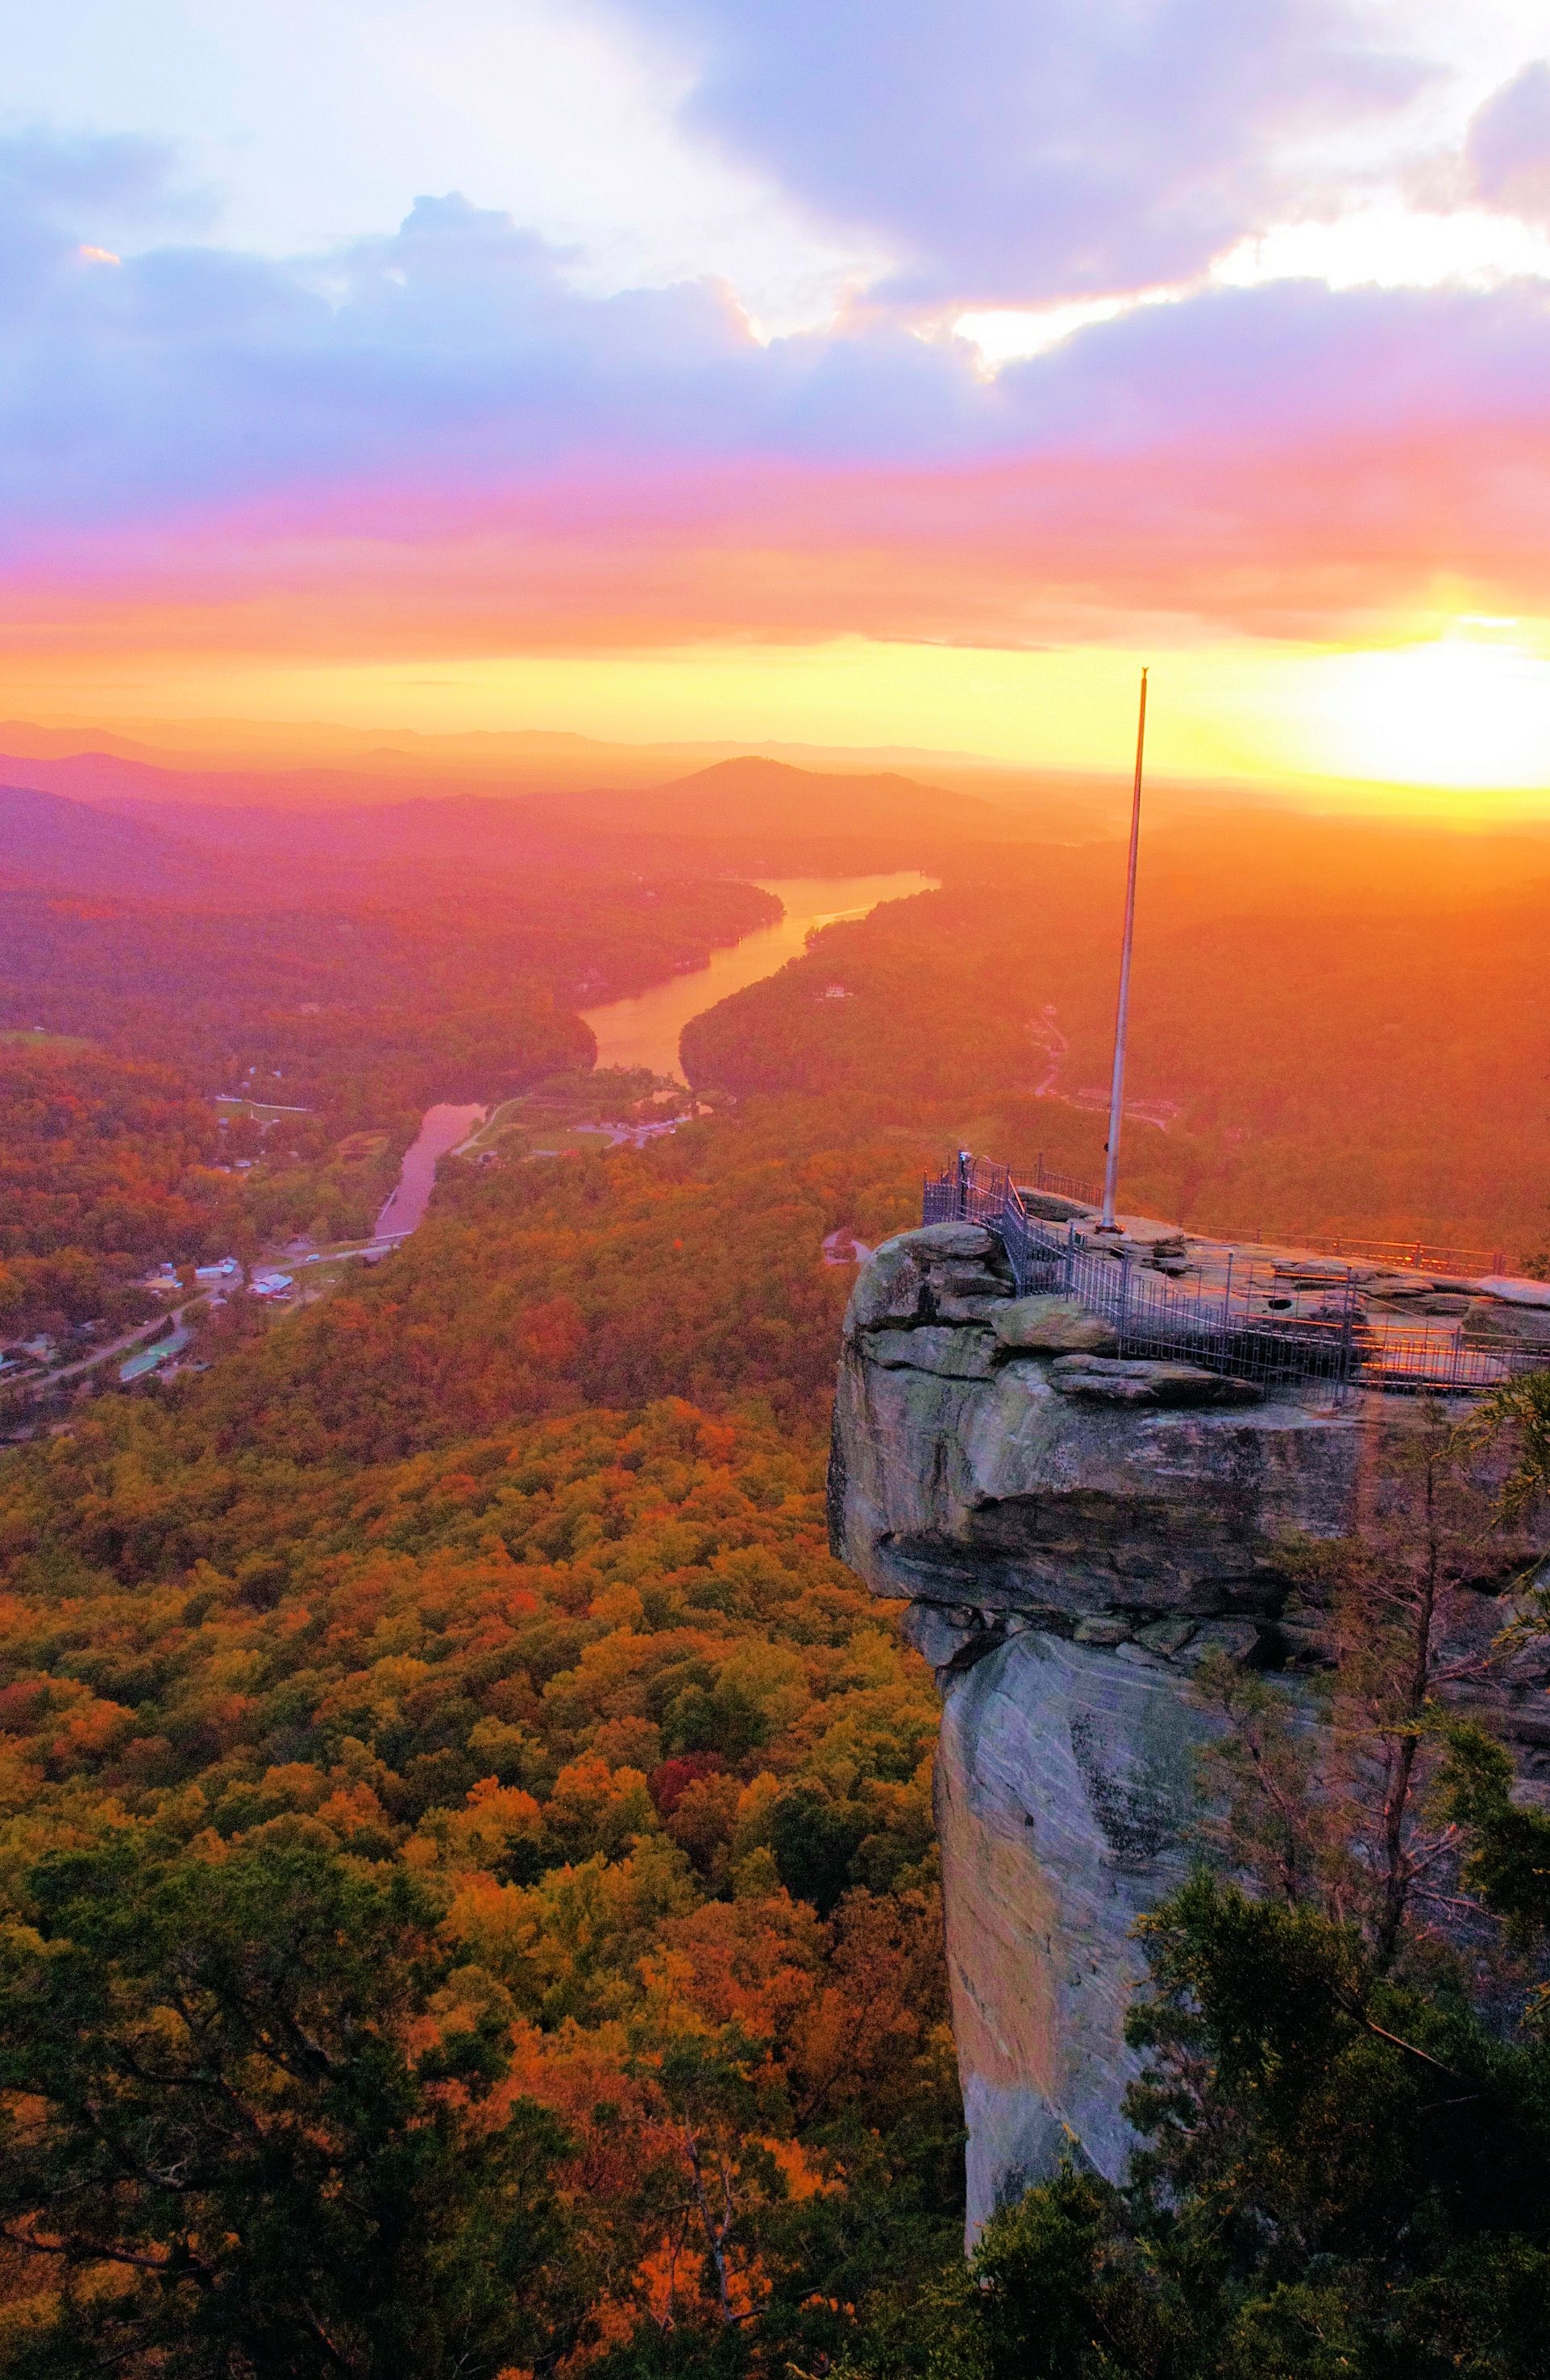 Sunrise at #ChimneyRock, NC, in the mountains near ...